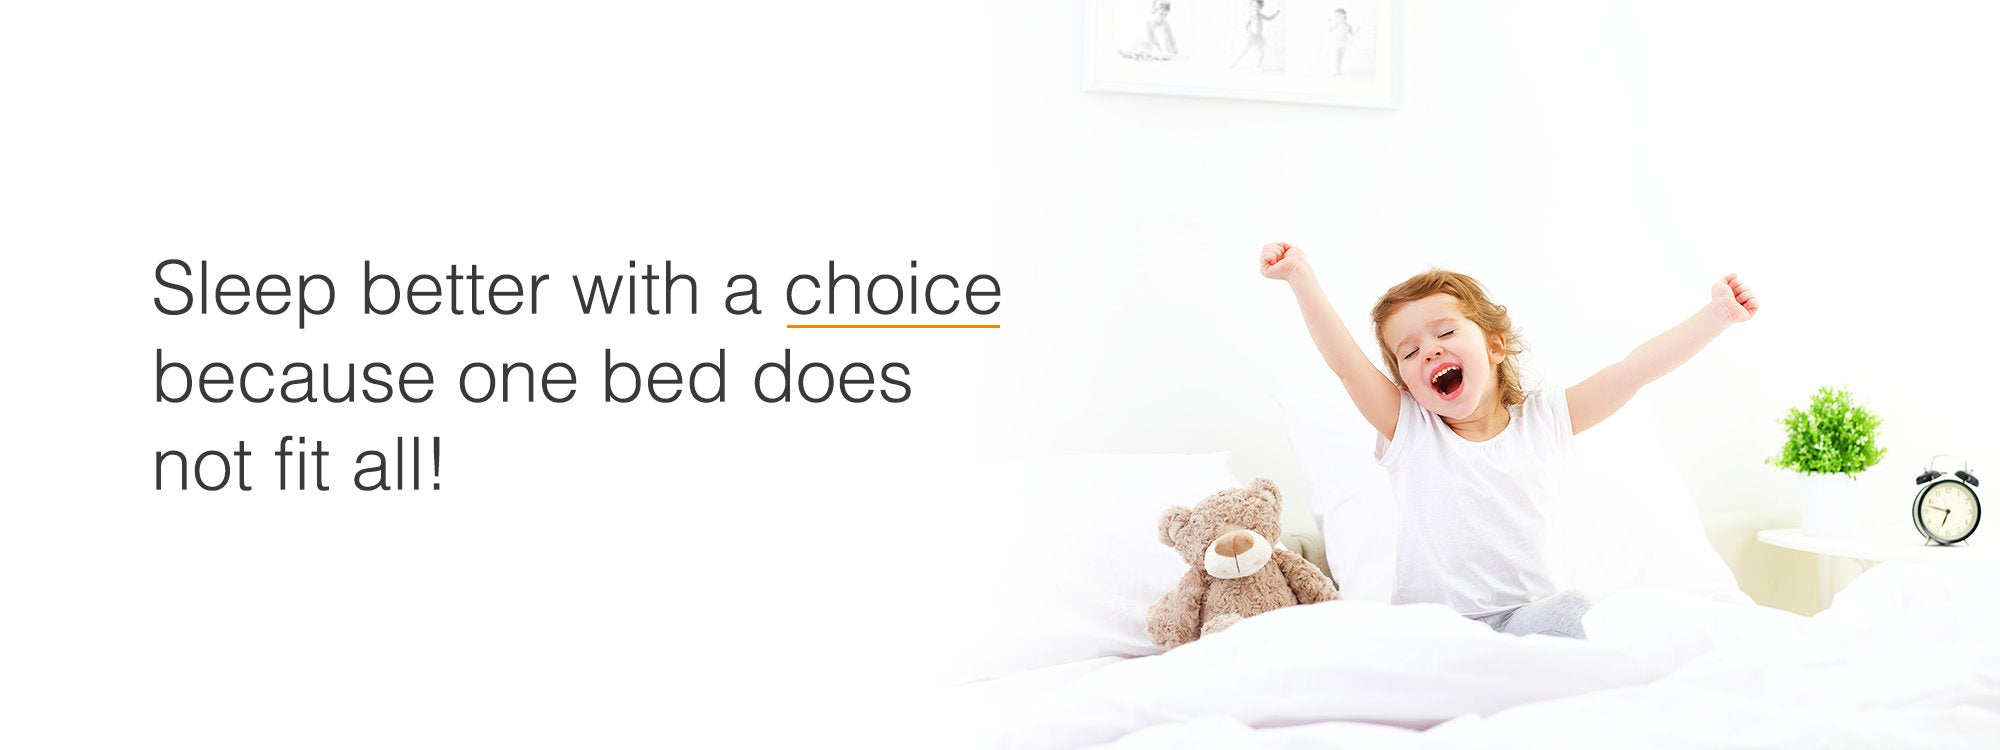 Sleep better with a choice because one bed does not fit all!